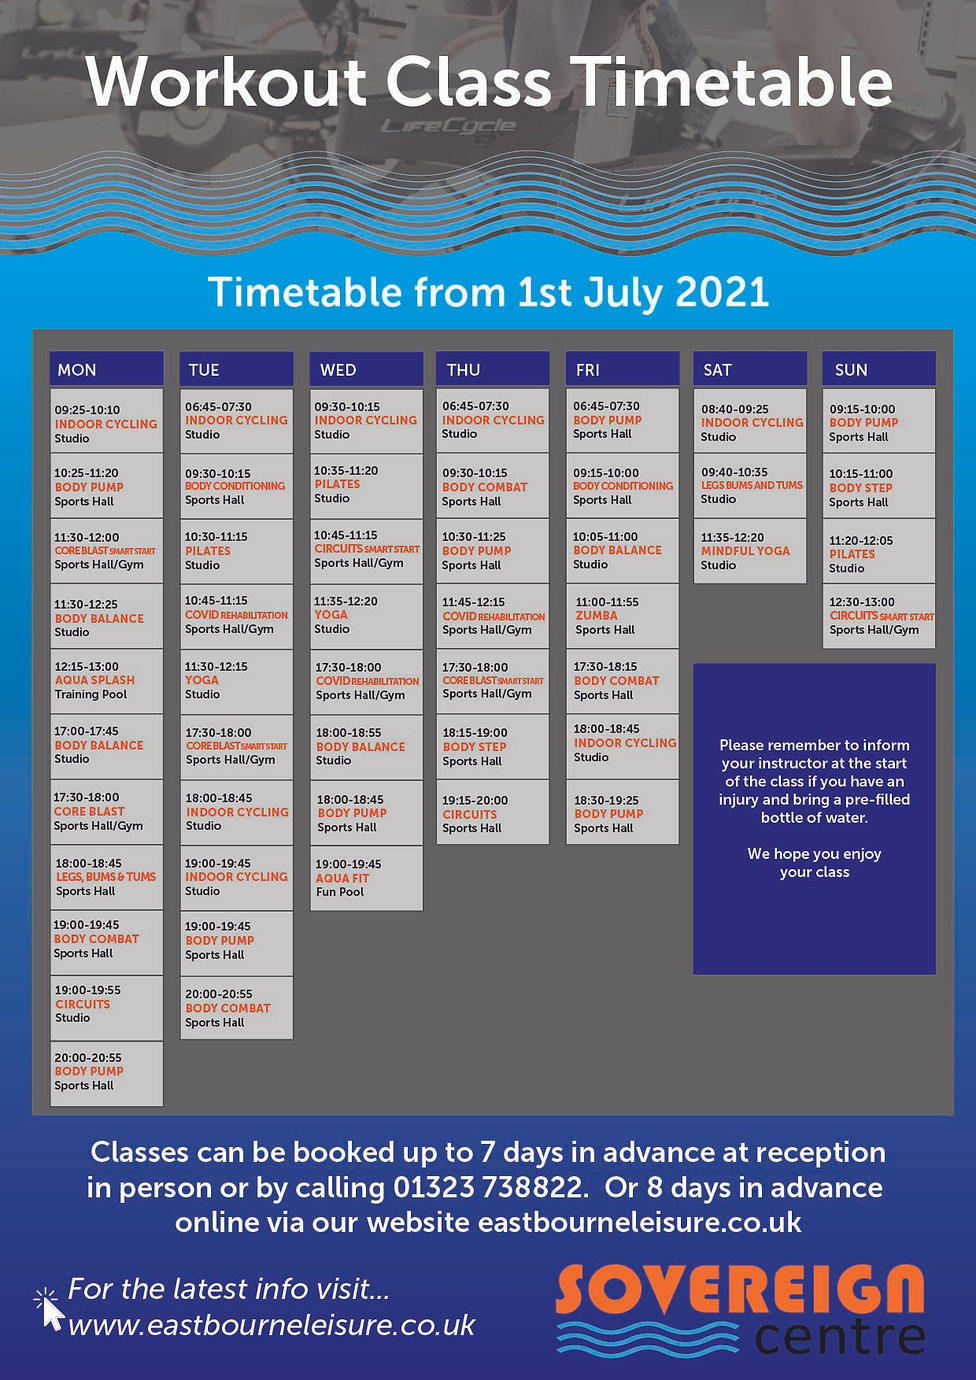 workout timetable 1st July 21.jpg